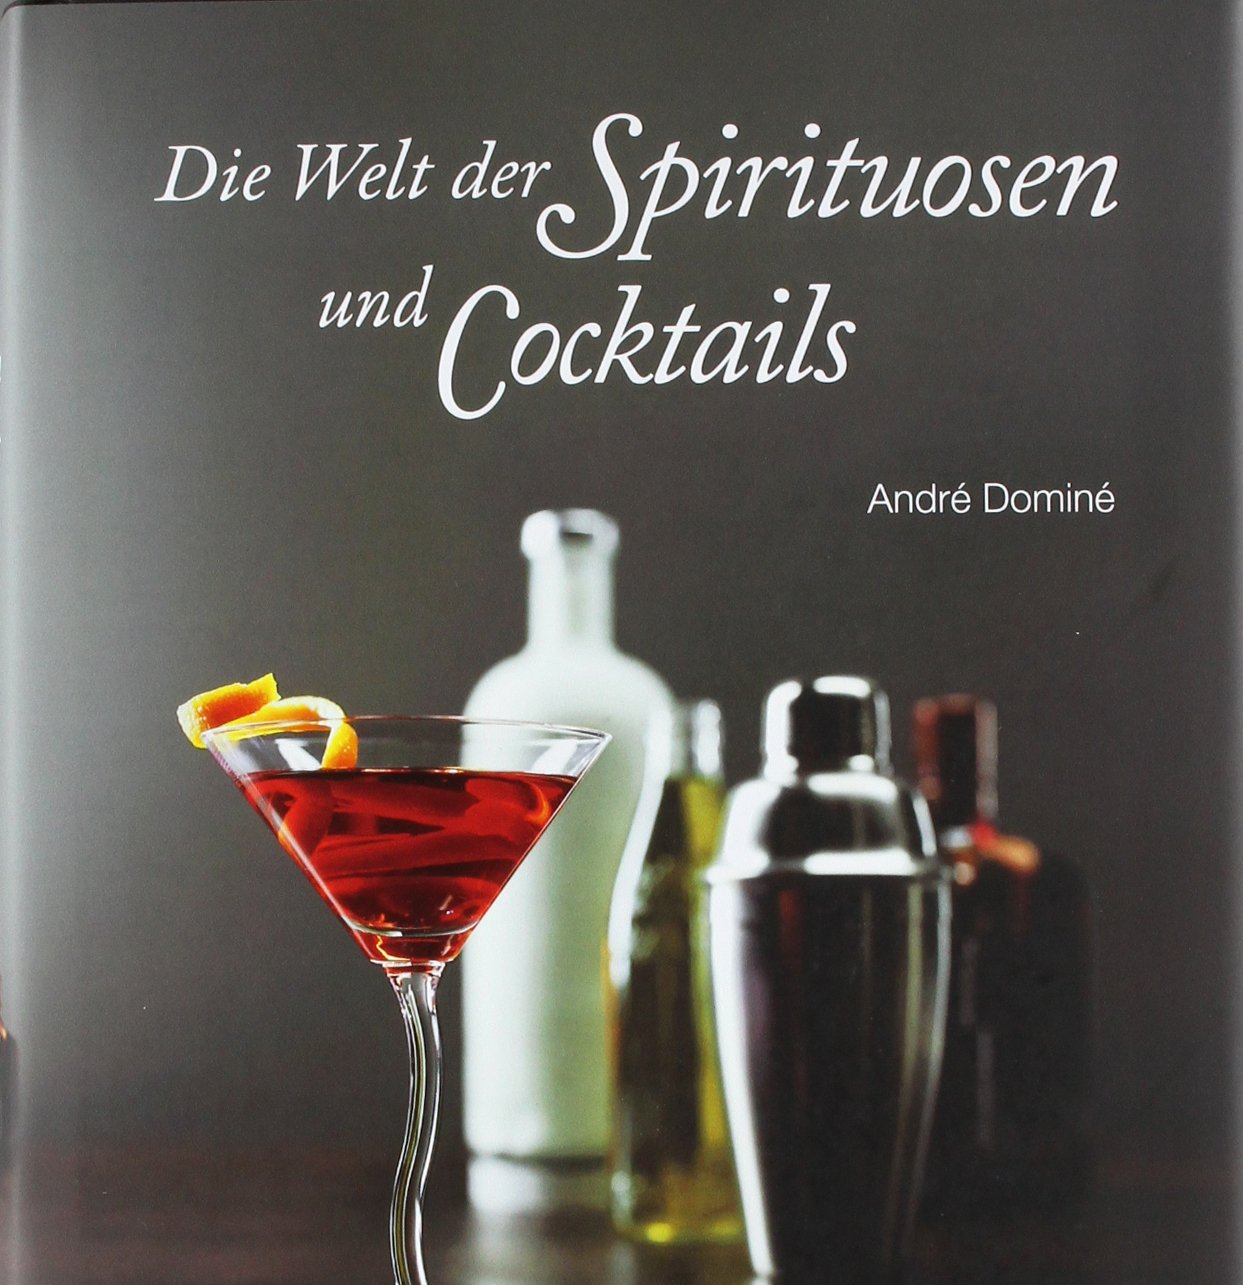 The ultimate bar book: die Welt der Spirituosen und Cocktails